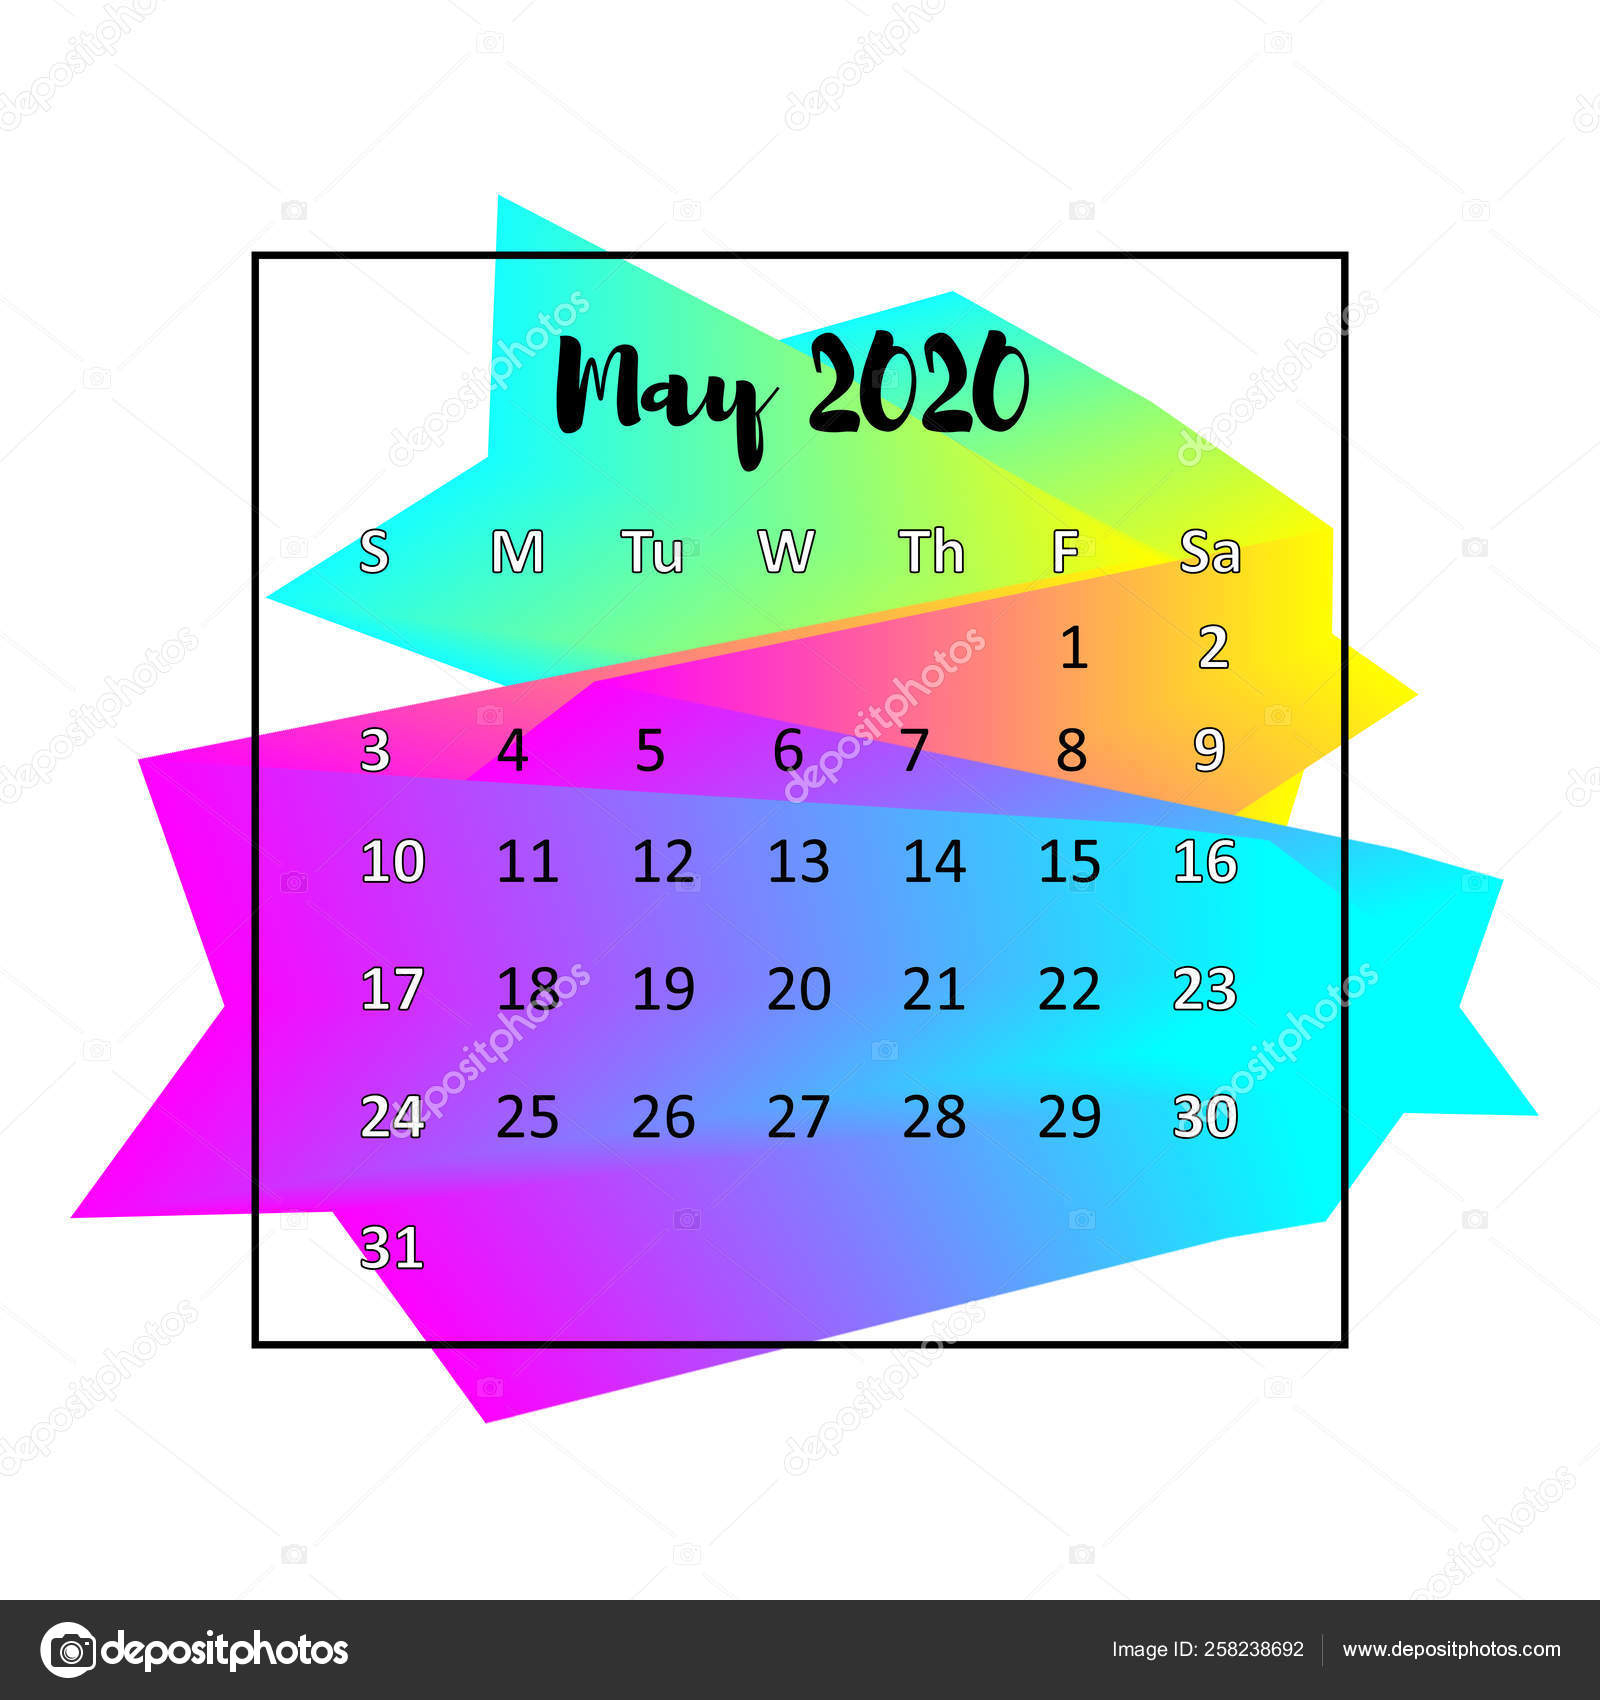 2020 Calendar Design Abstract Concept. May 2020. Business